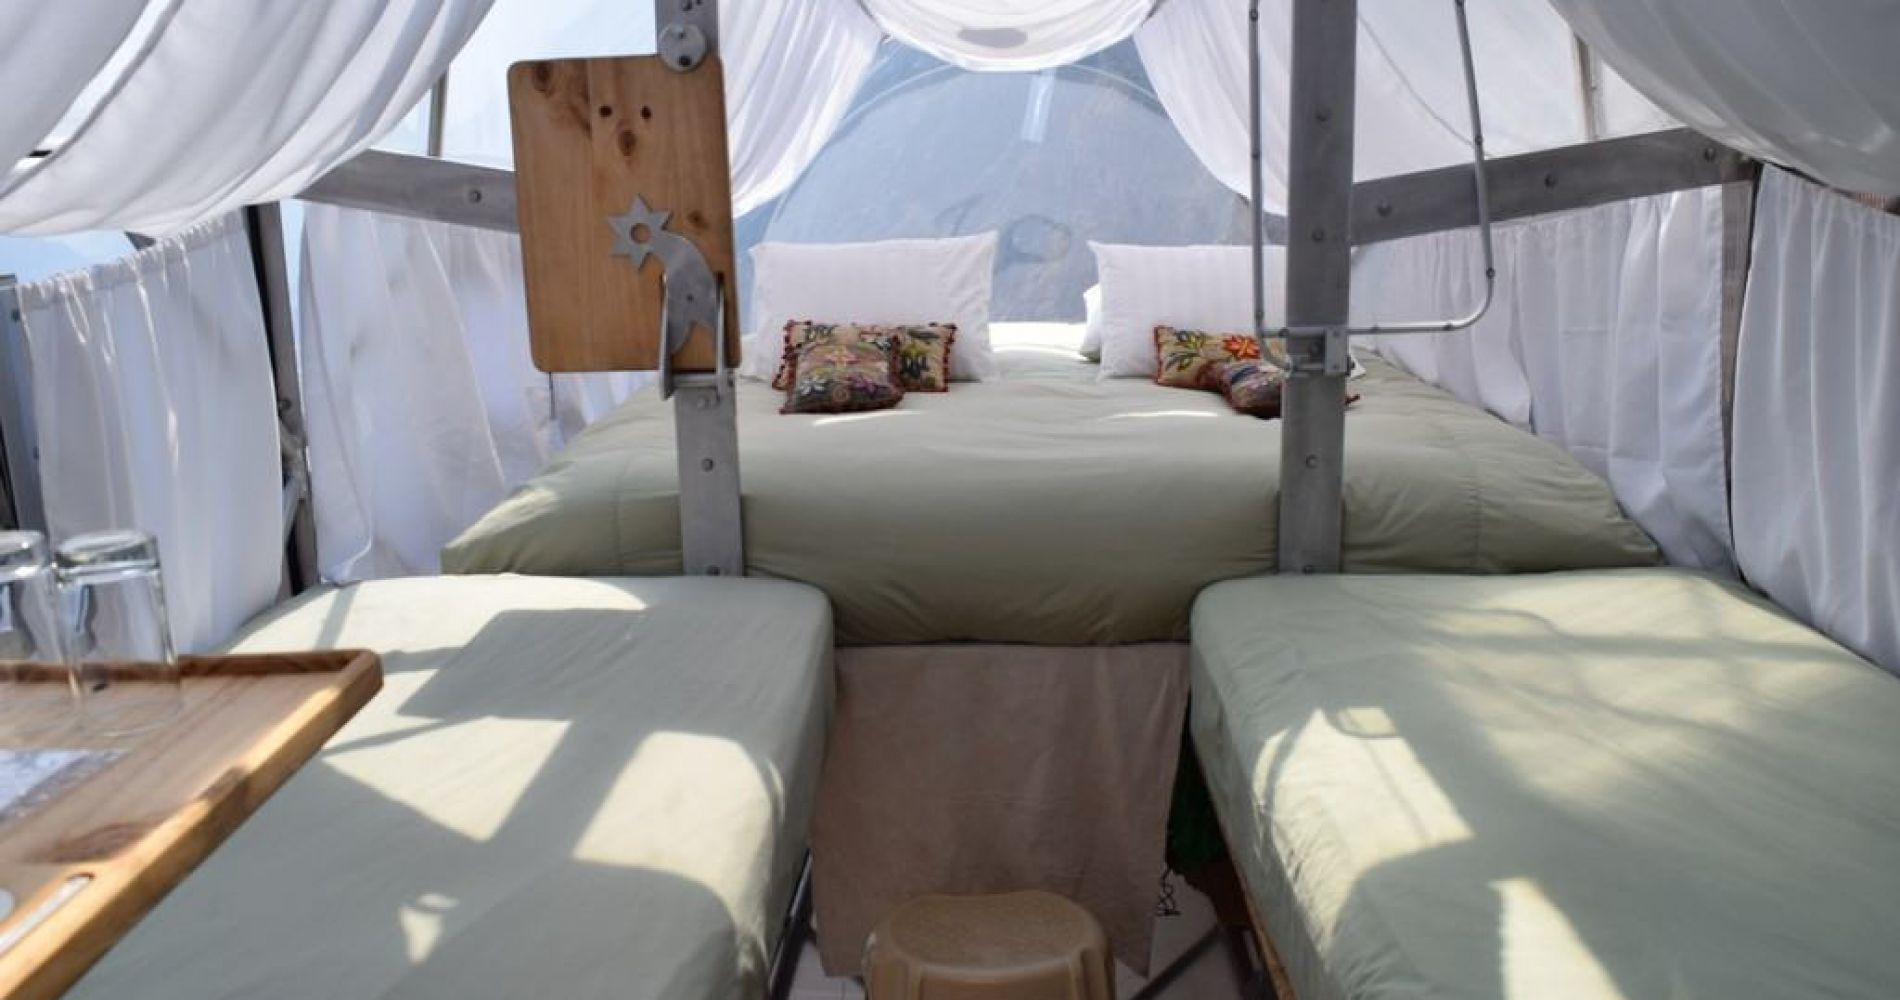 Overnight Stay Unique Skylodge Accommodation Peru Tinggly Experience Gift